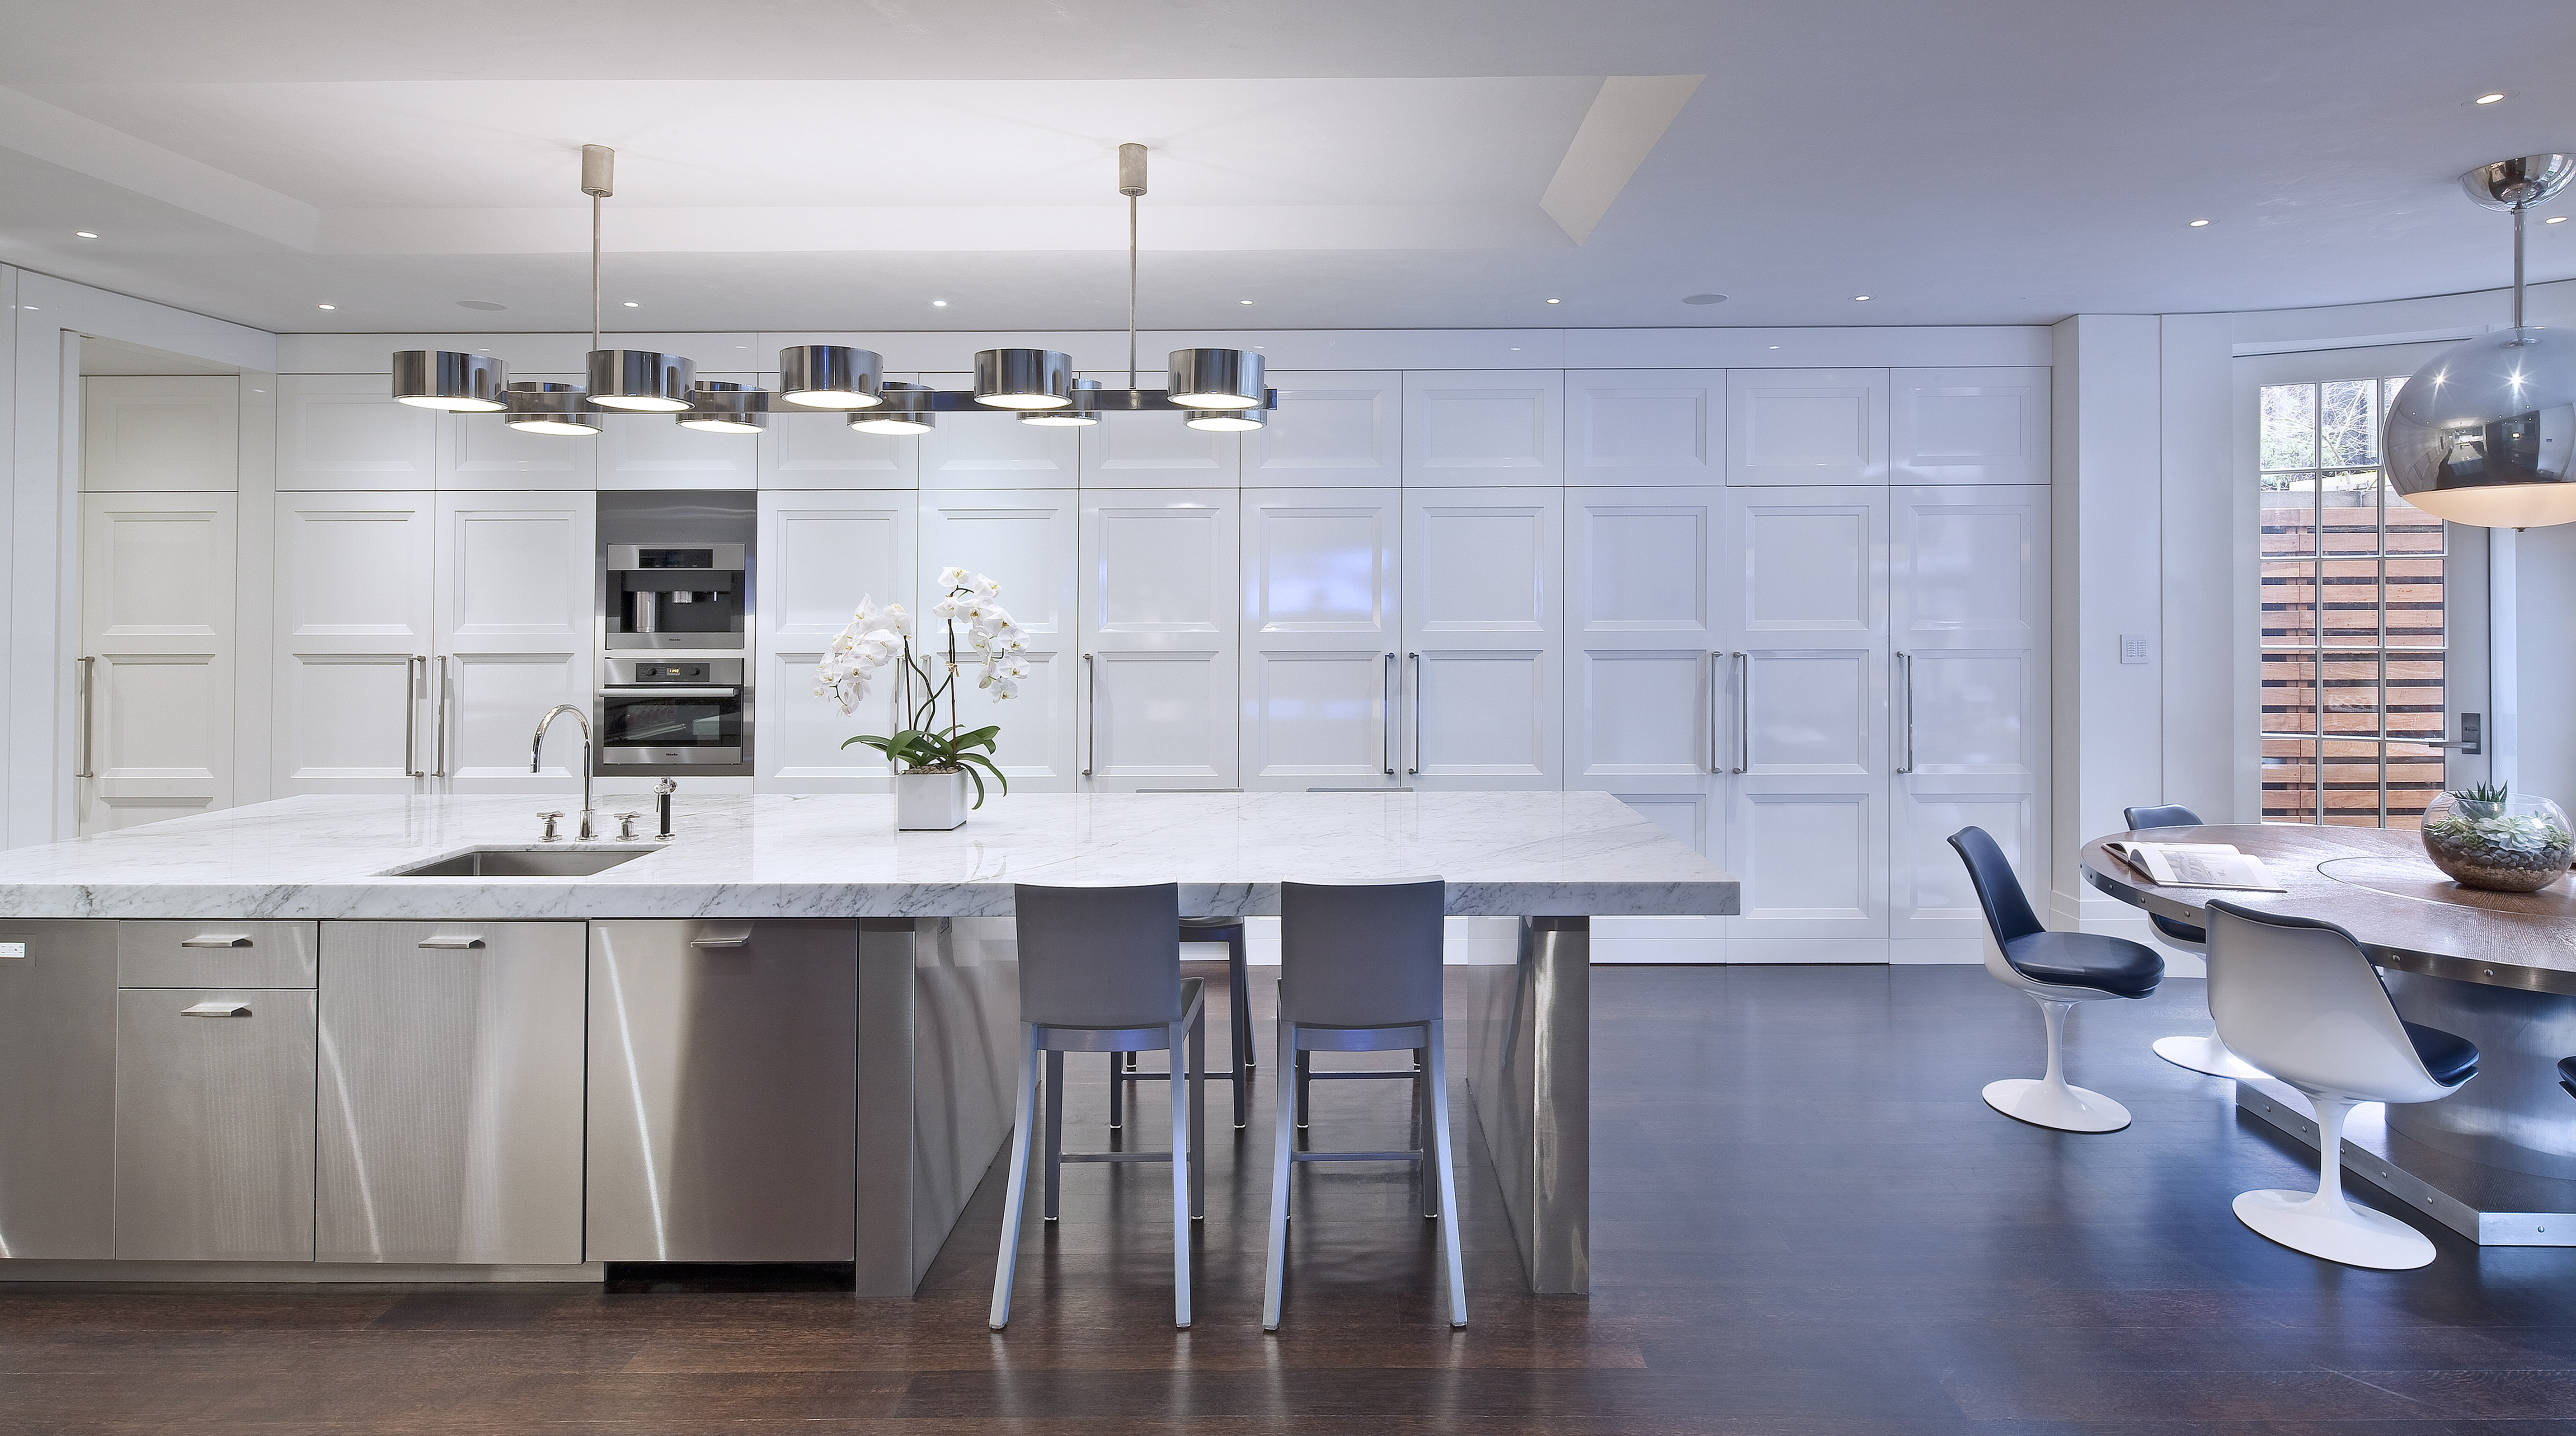 6 clever kitchen design ideas from st.  Charles of New York BPZBUPN